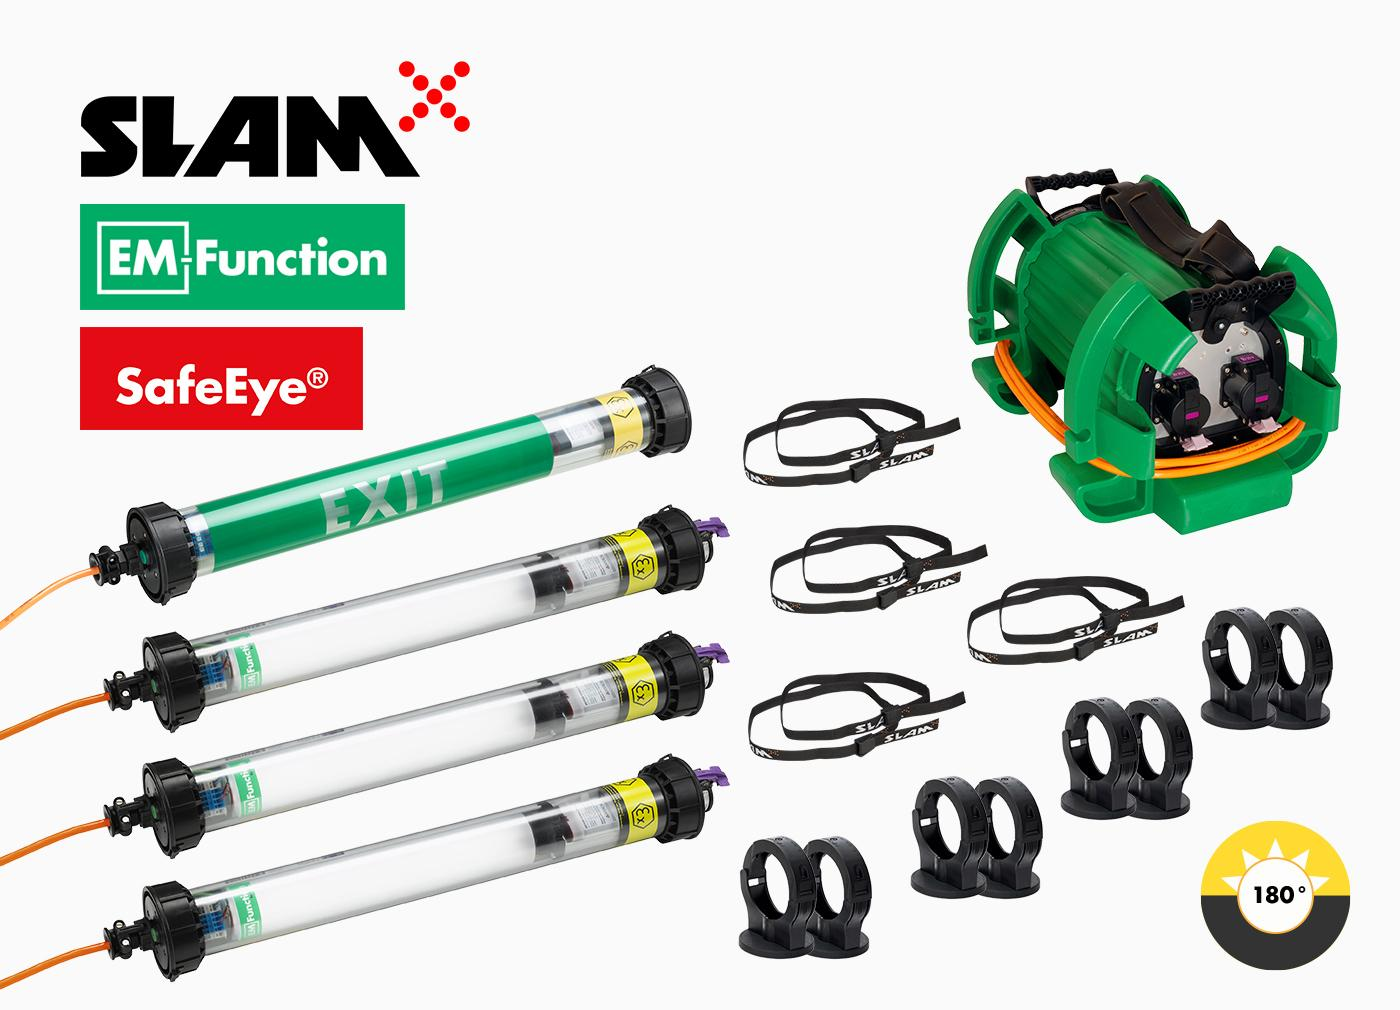 Portable ATEX lighting set for confined spaces. Ready for use in hazadous areas.